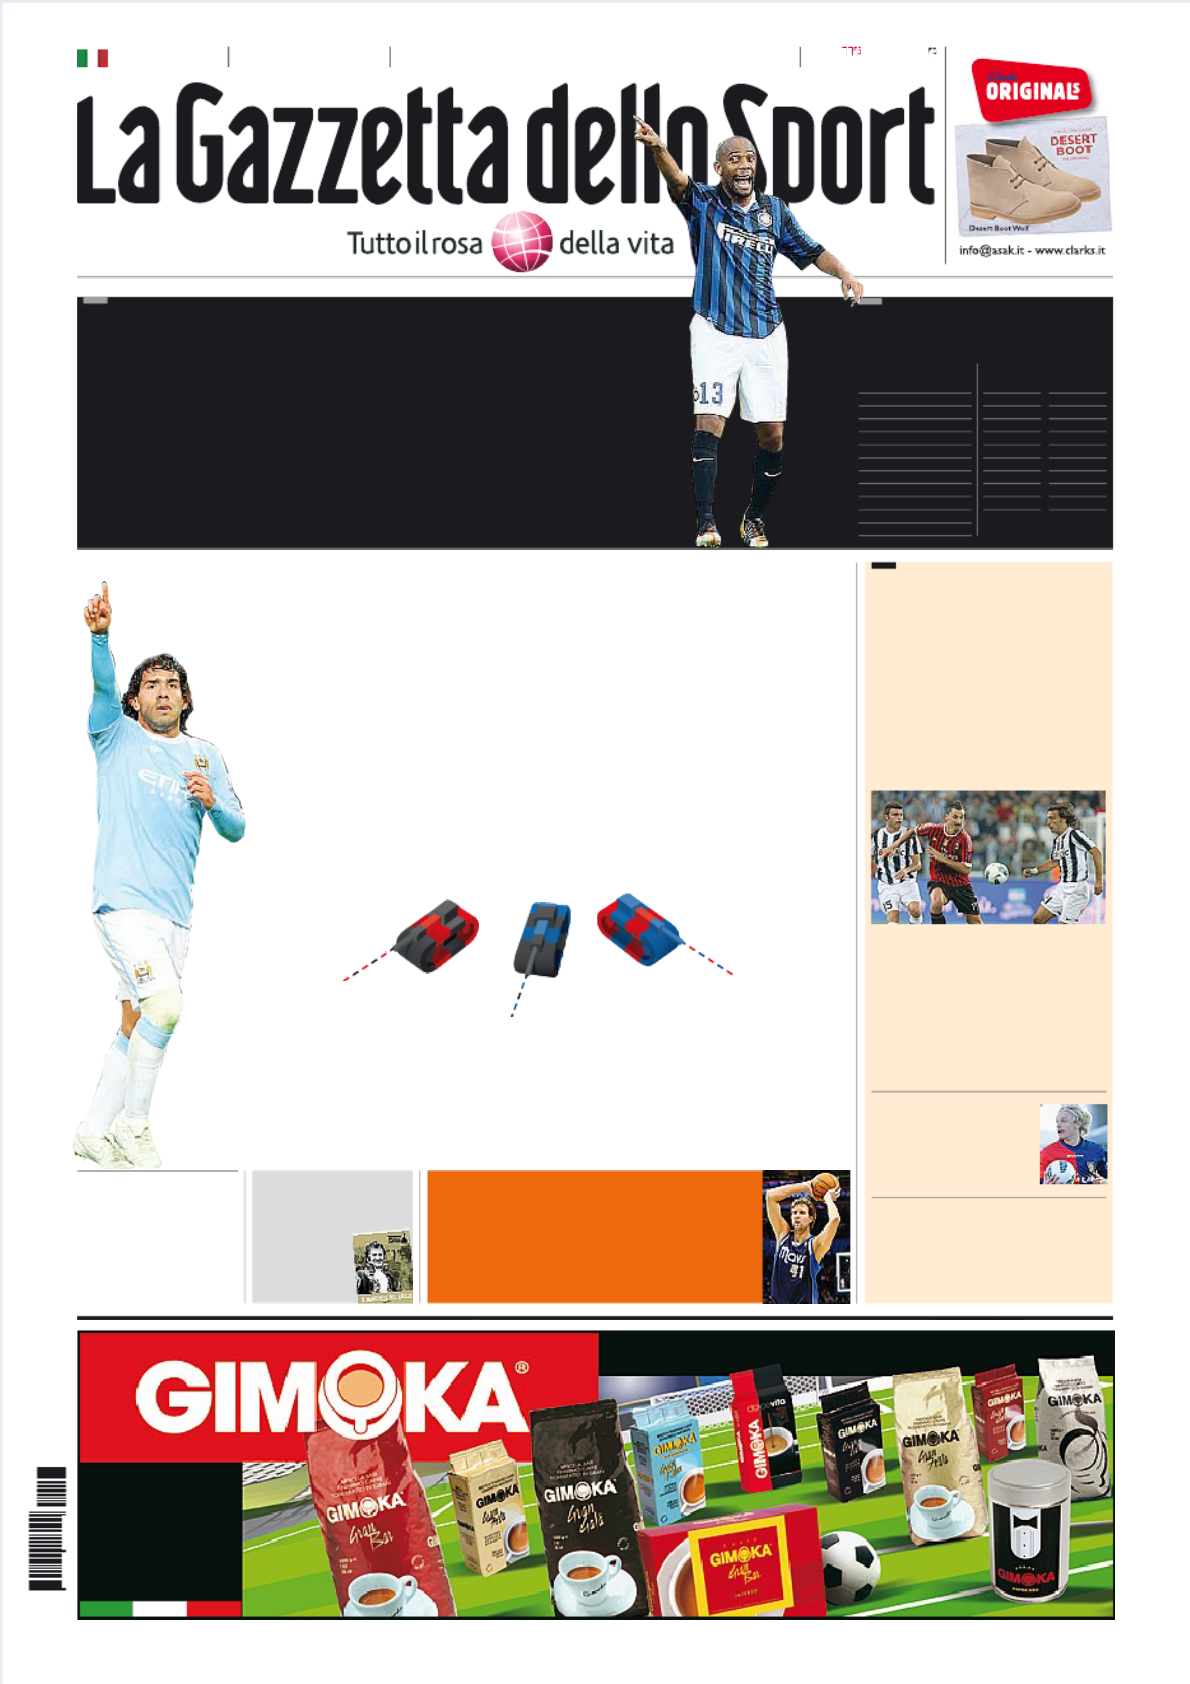 Gazzetta Dello Sport 07 01 2012 Pdf Document